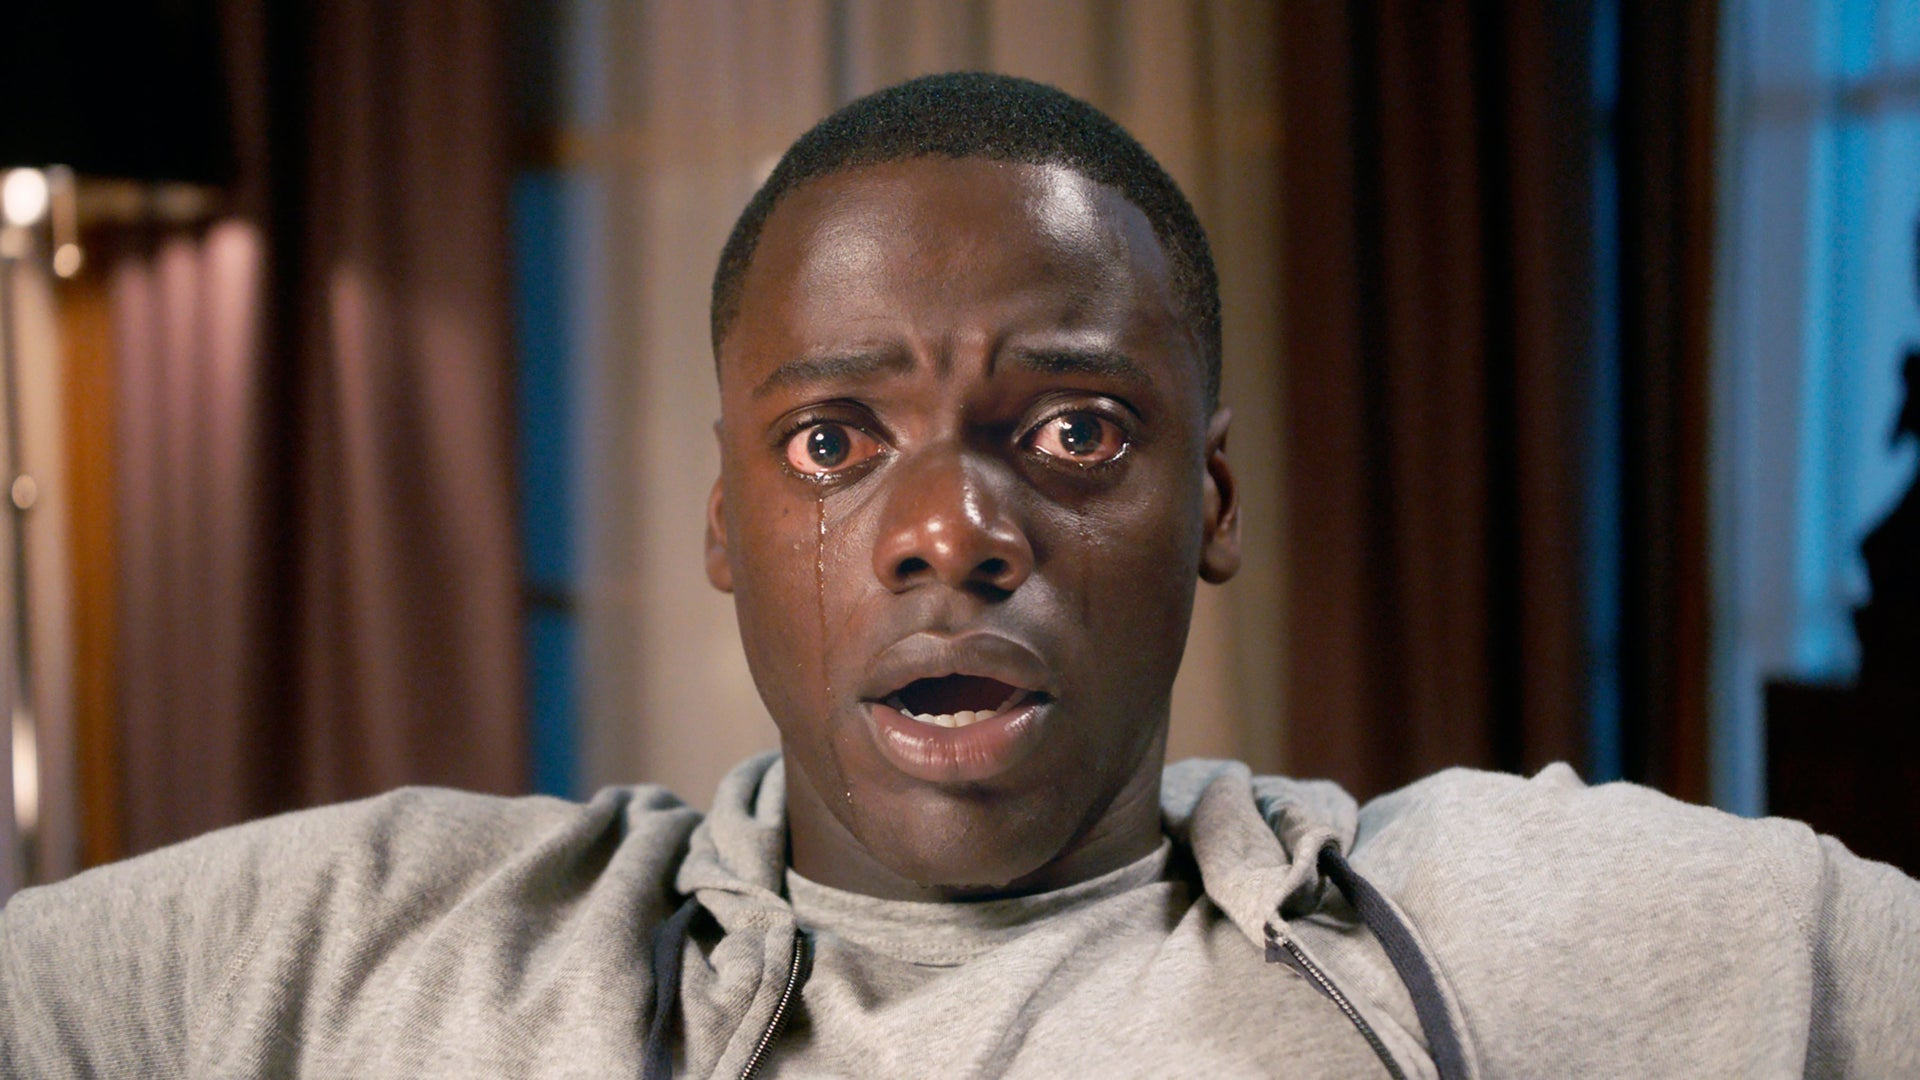 'Get Out' And 'Mudbound' Rack Up Well-Deserved Oscar Nominations